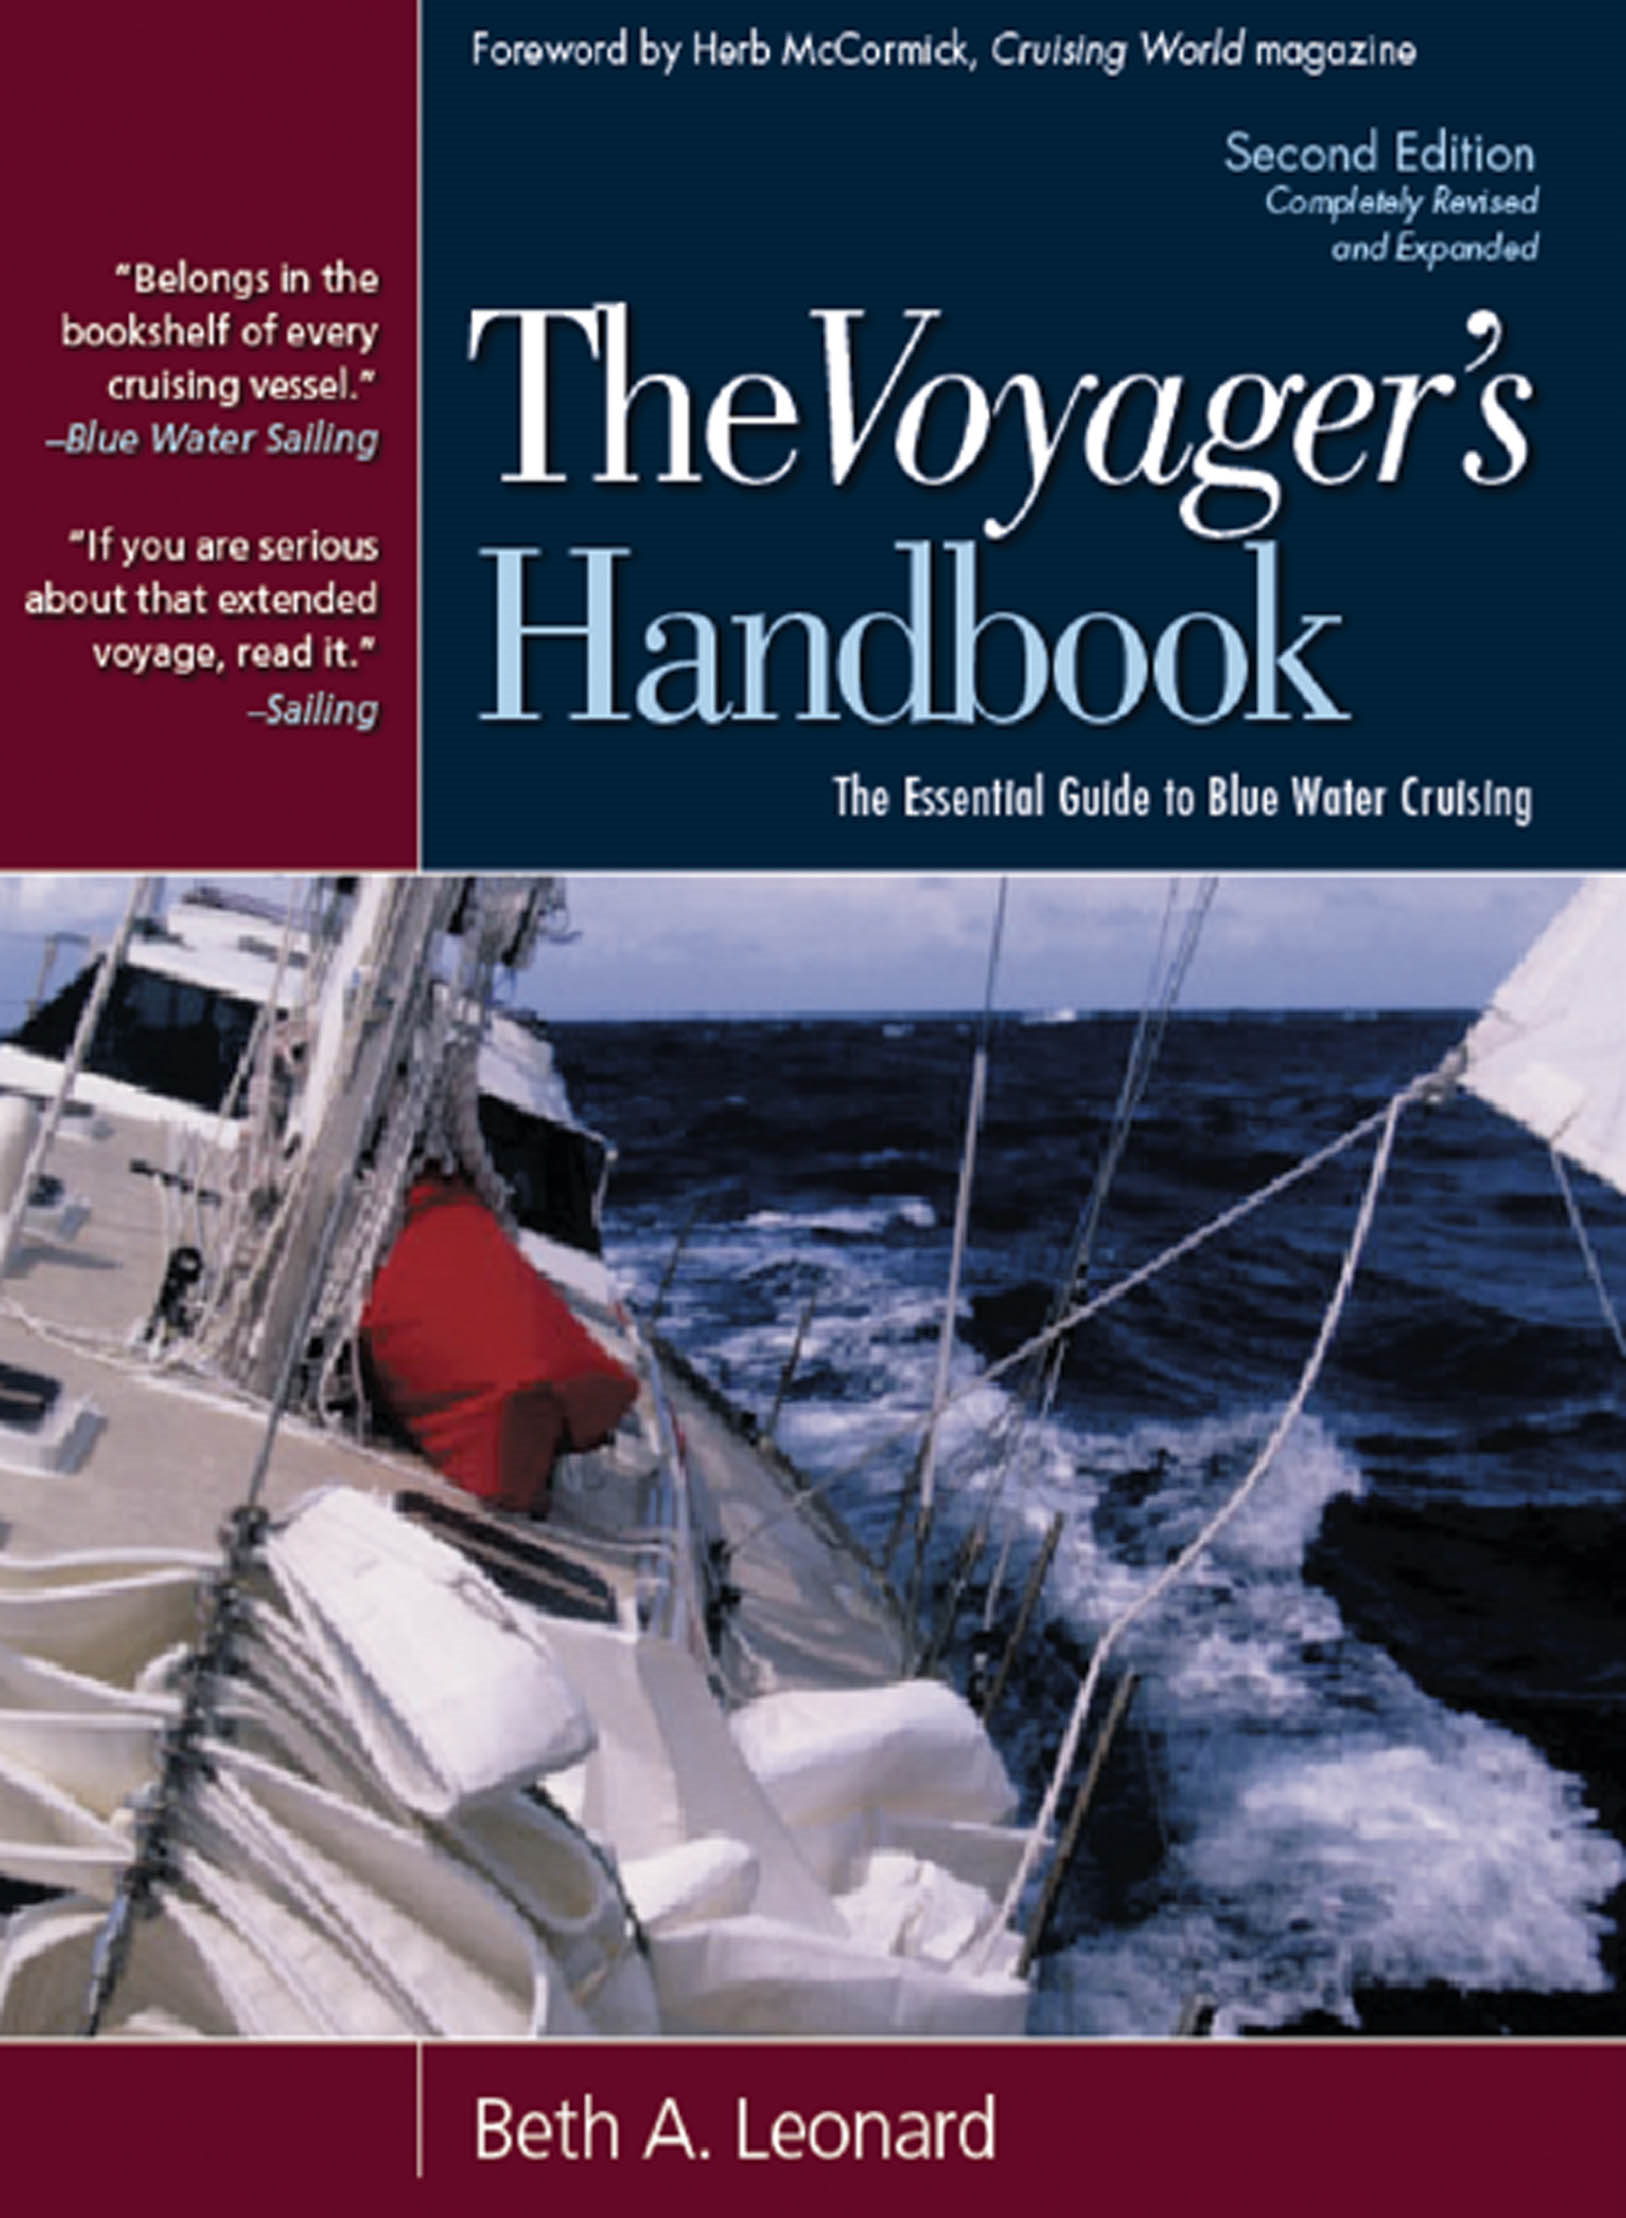 The Voyager's Handbook : The Essential Guide to Blue Water Cruising